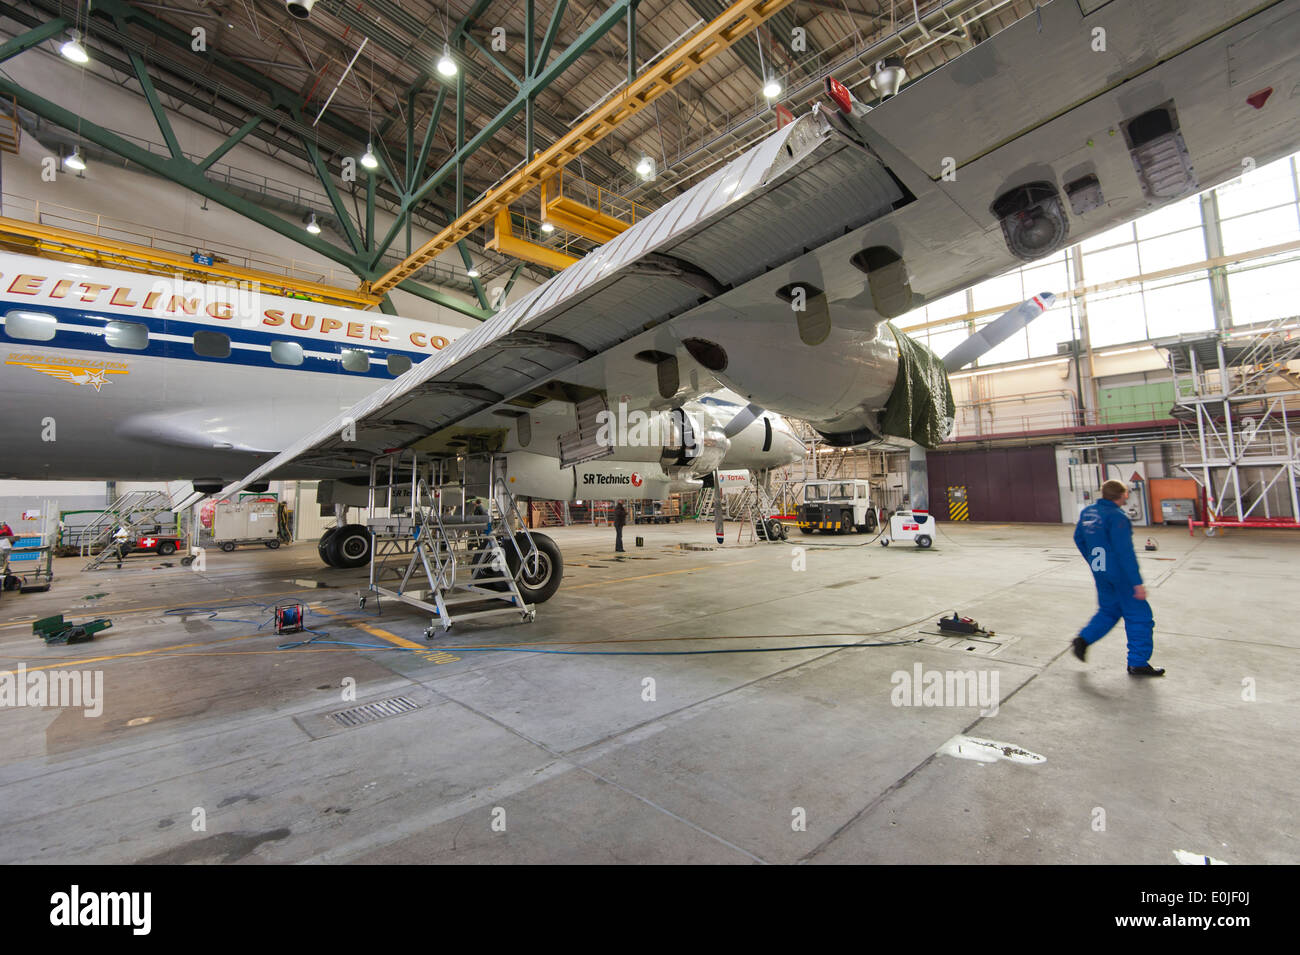 The historic passenger aircraft Lockheed Super Constellation L-1049 'HB-RSC' during maintenance in a hangar in Zurich/Kloten. - Stock Image